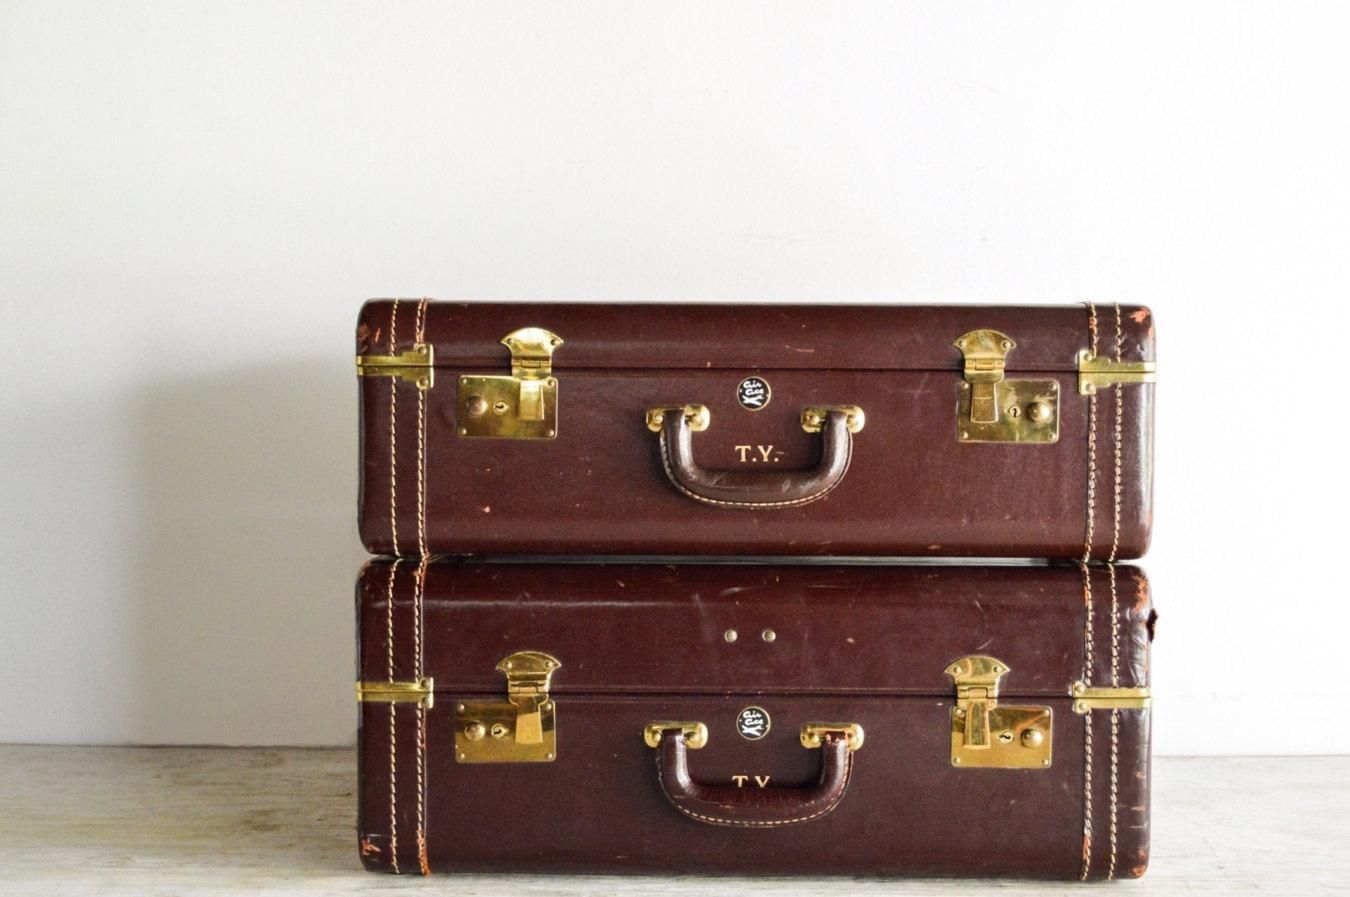 Old Suitcases Suitcases Luggage Set Old Luggage Gorgeous Oxblood Burgundy Red